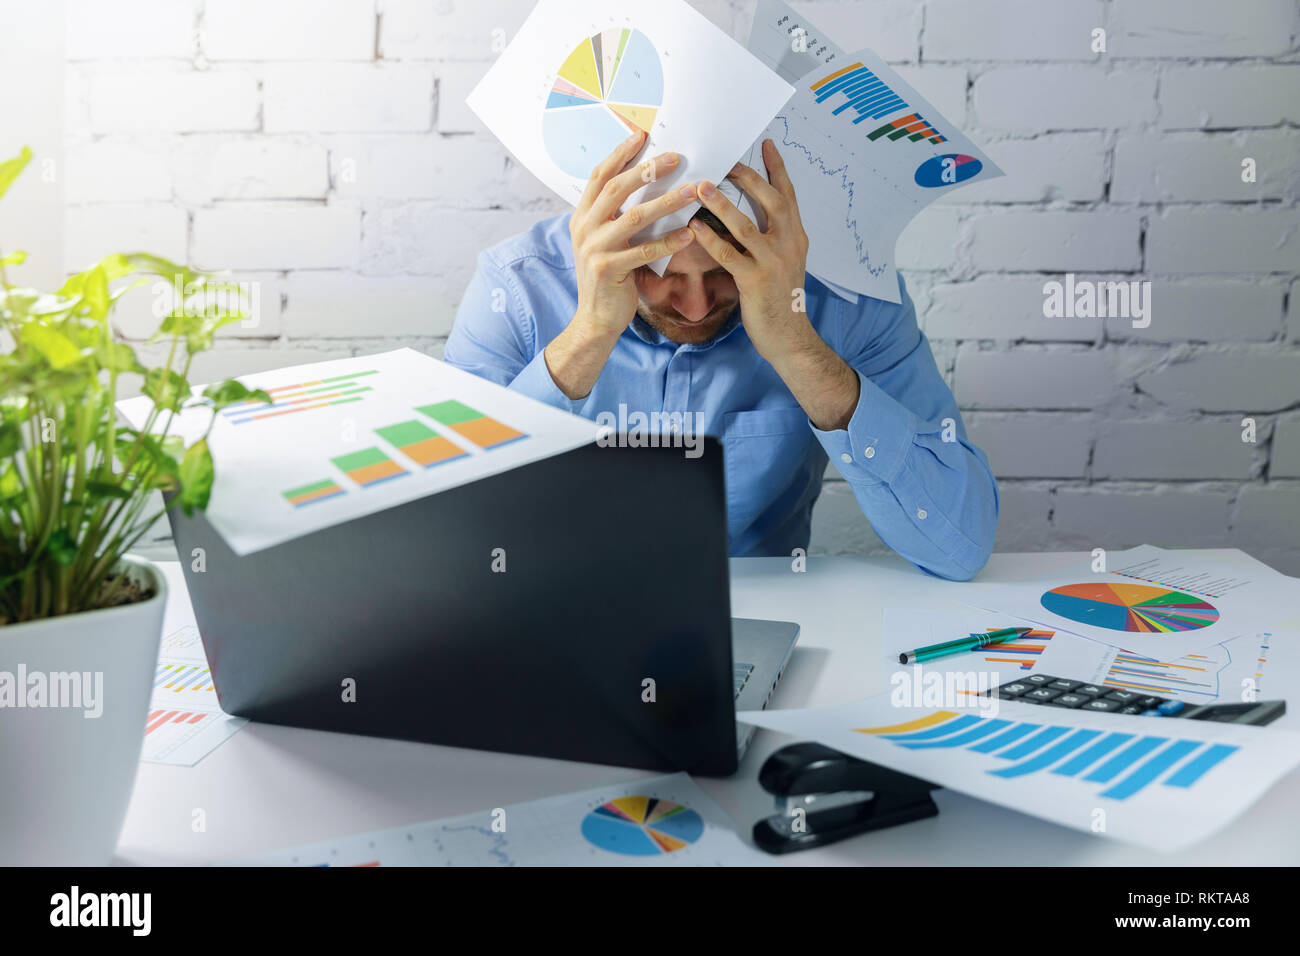 desperate overworked businessman doing paperwork in office - Stock Image